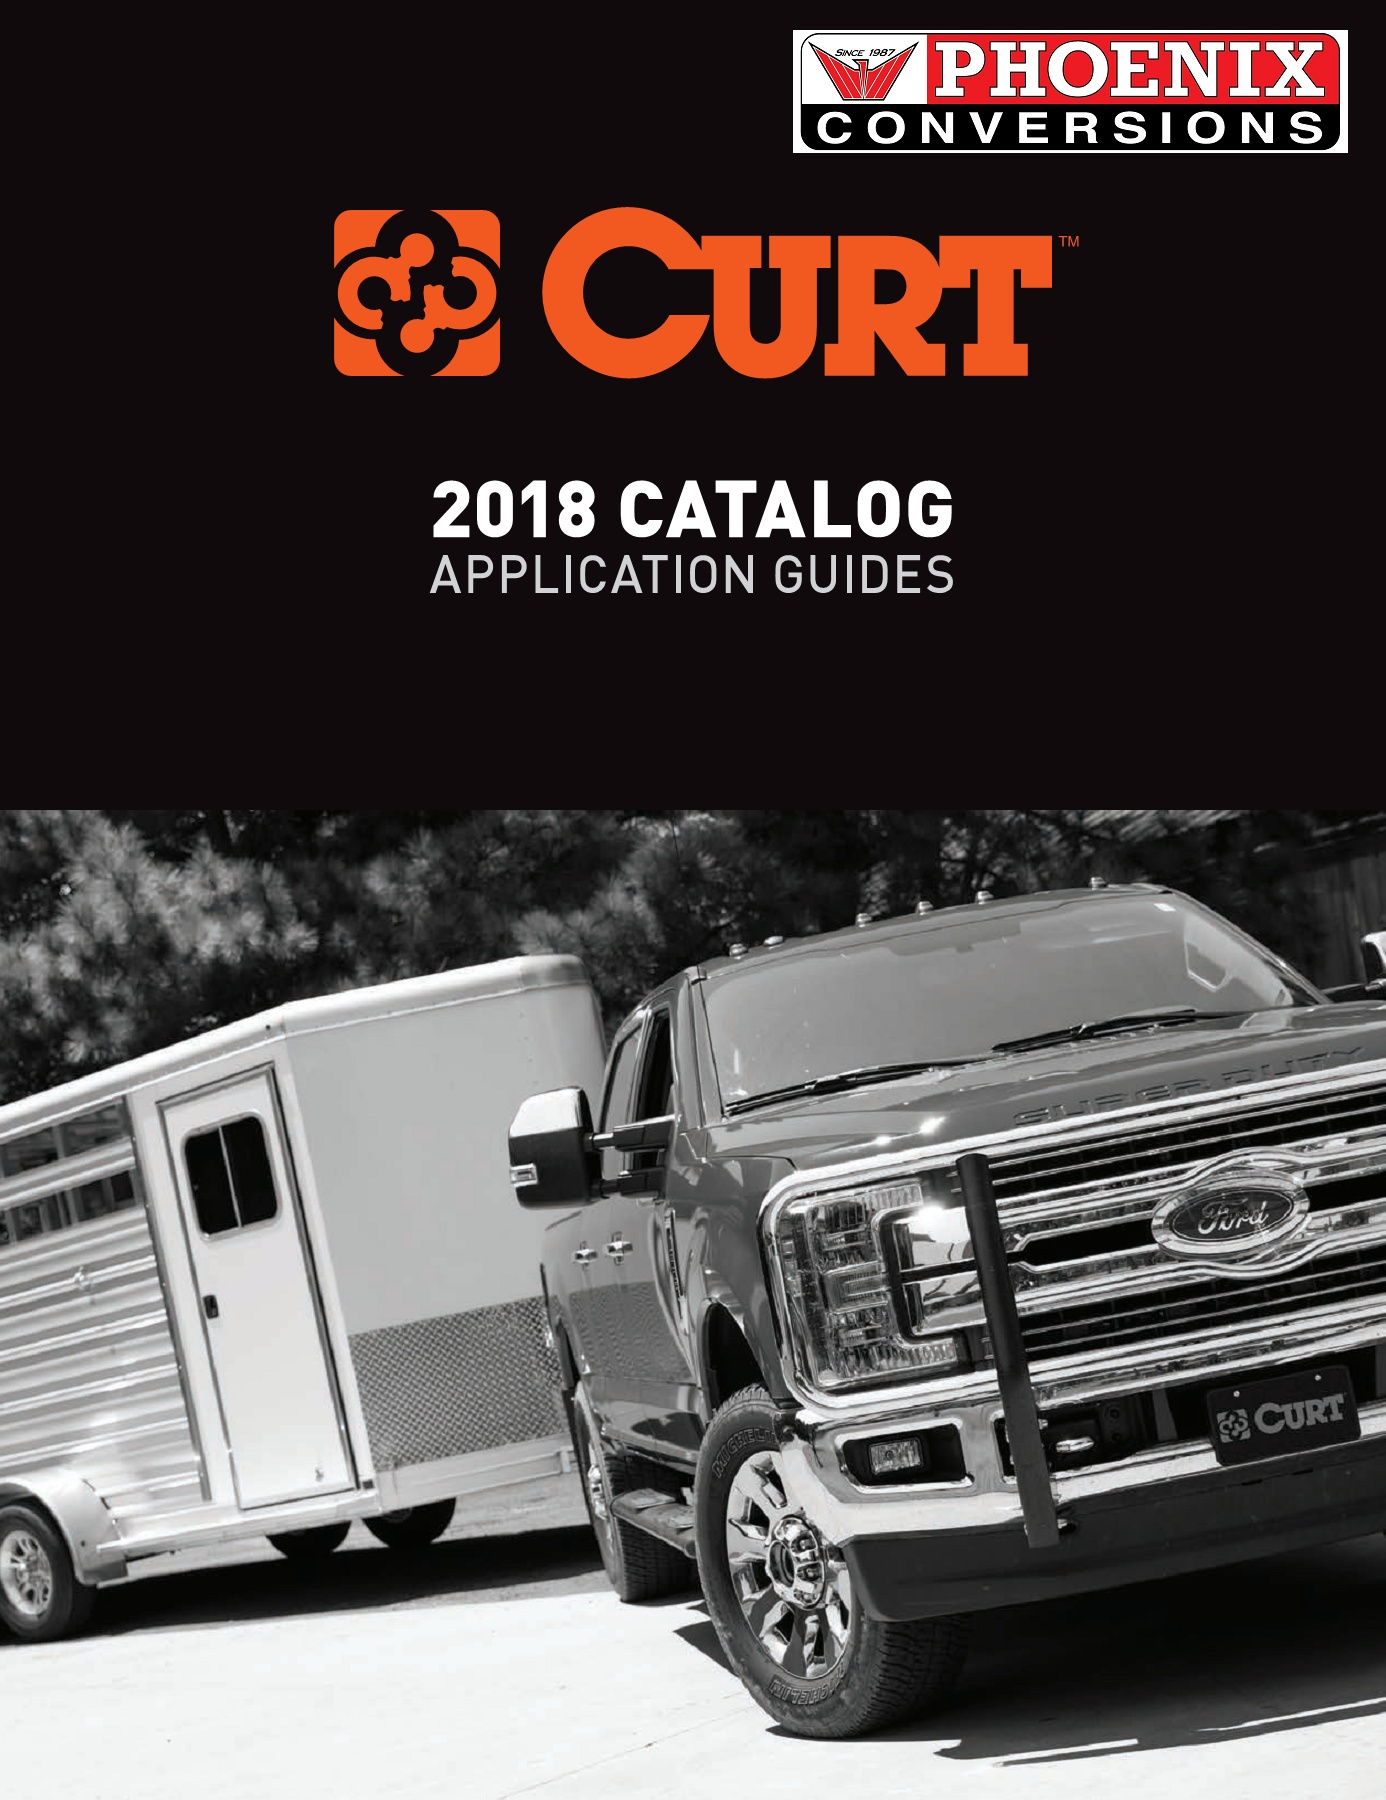 CURT 2018 - Catalog (With App Guide)